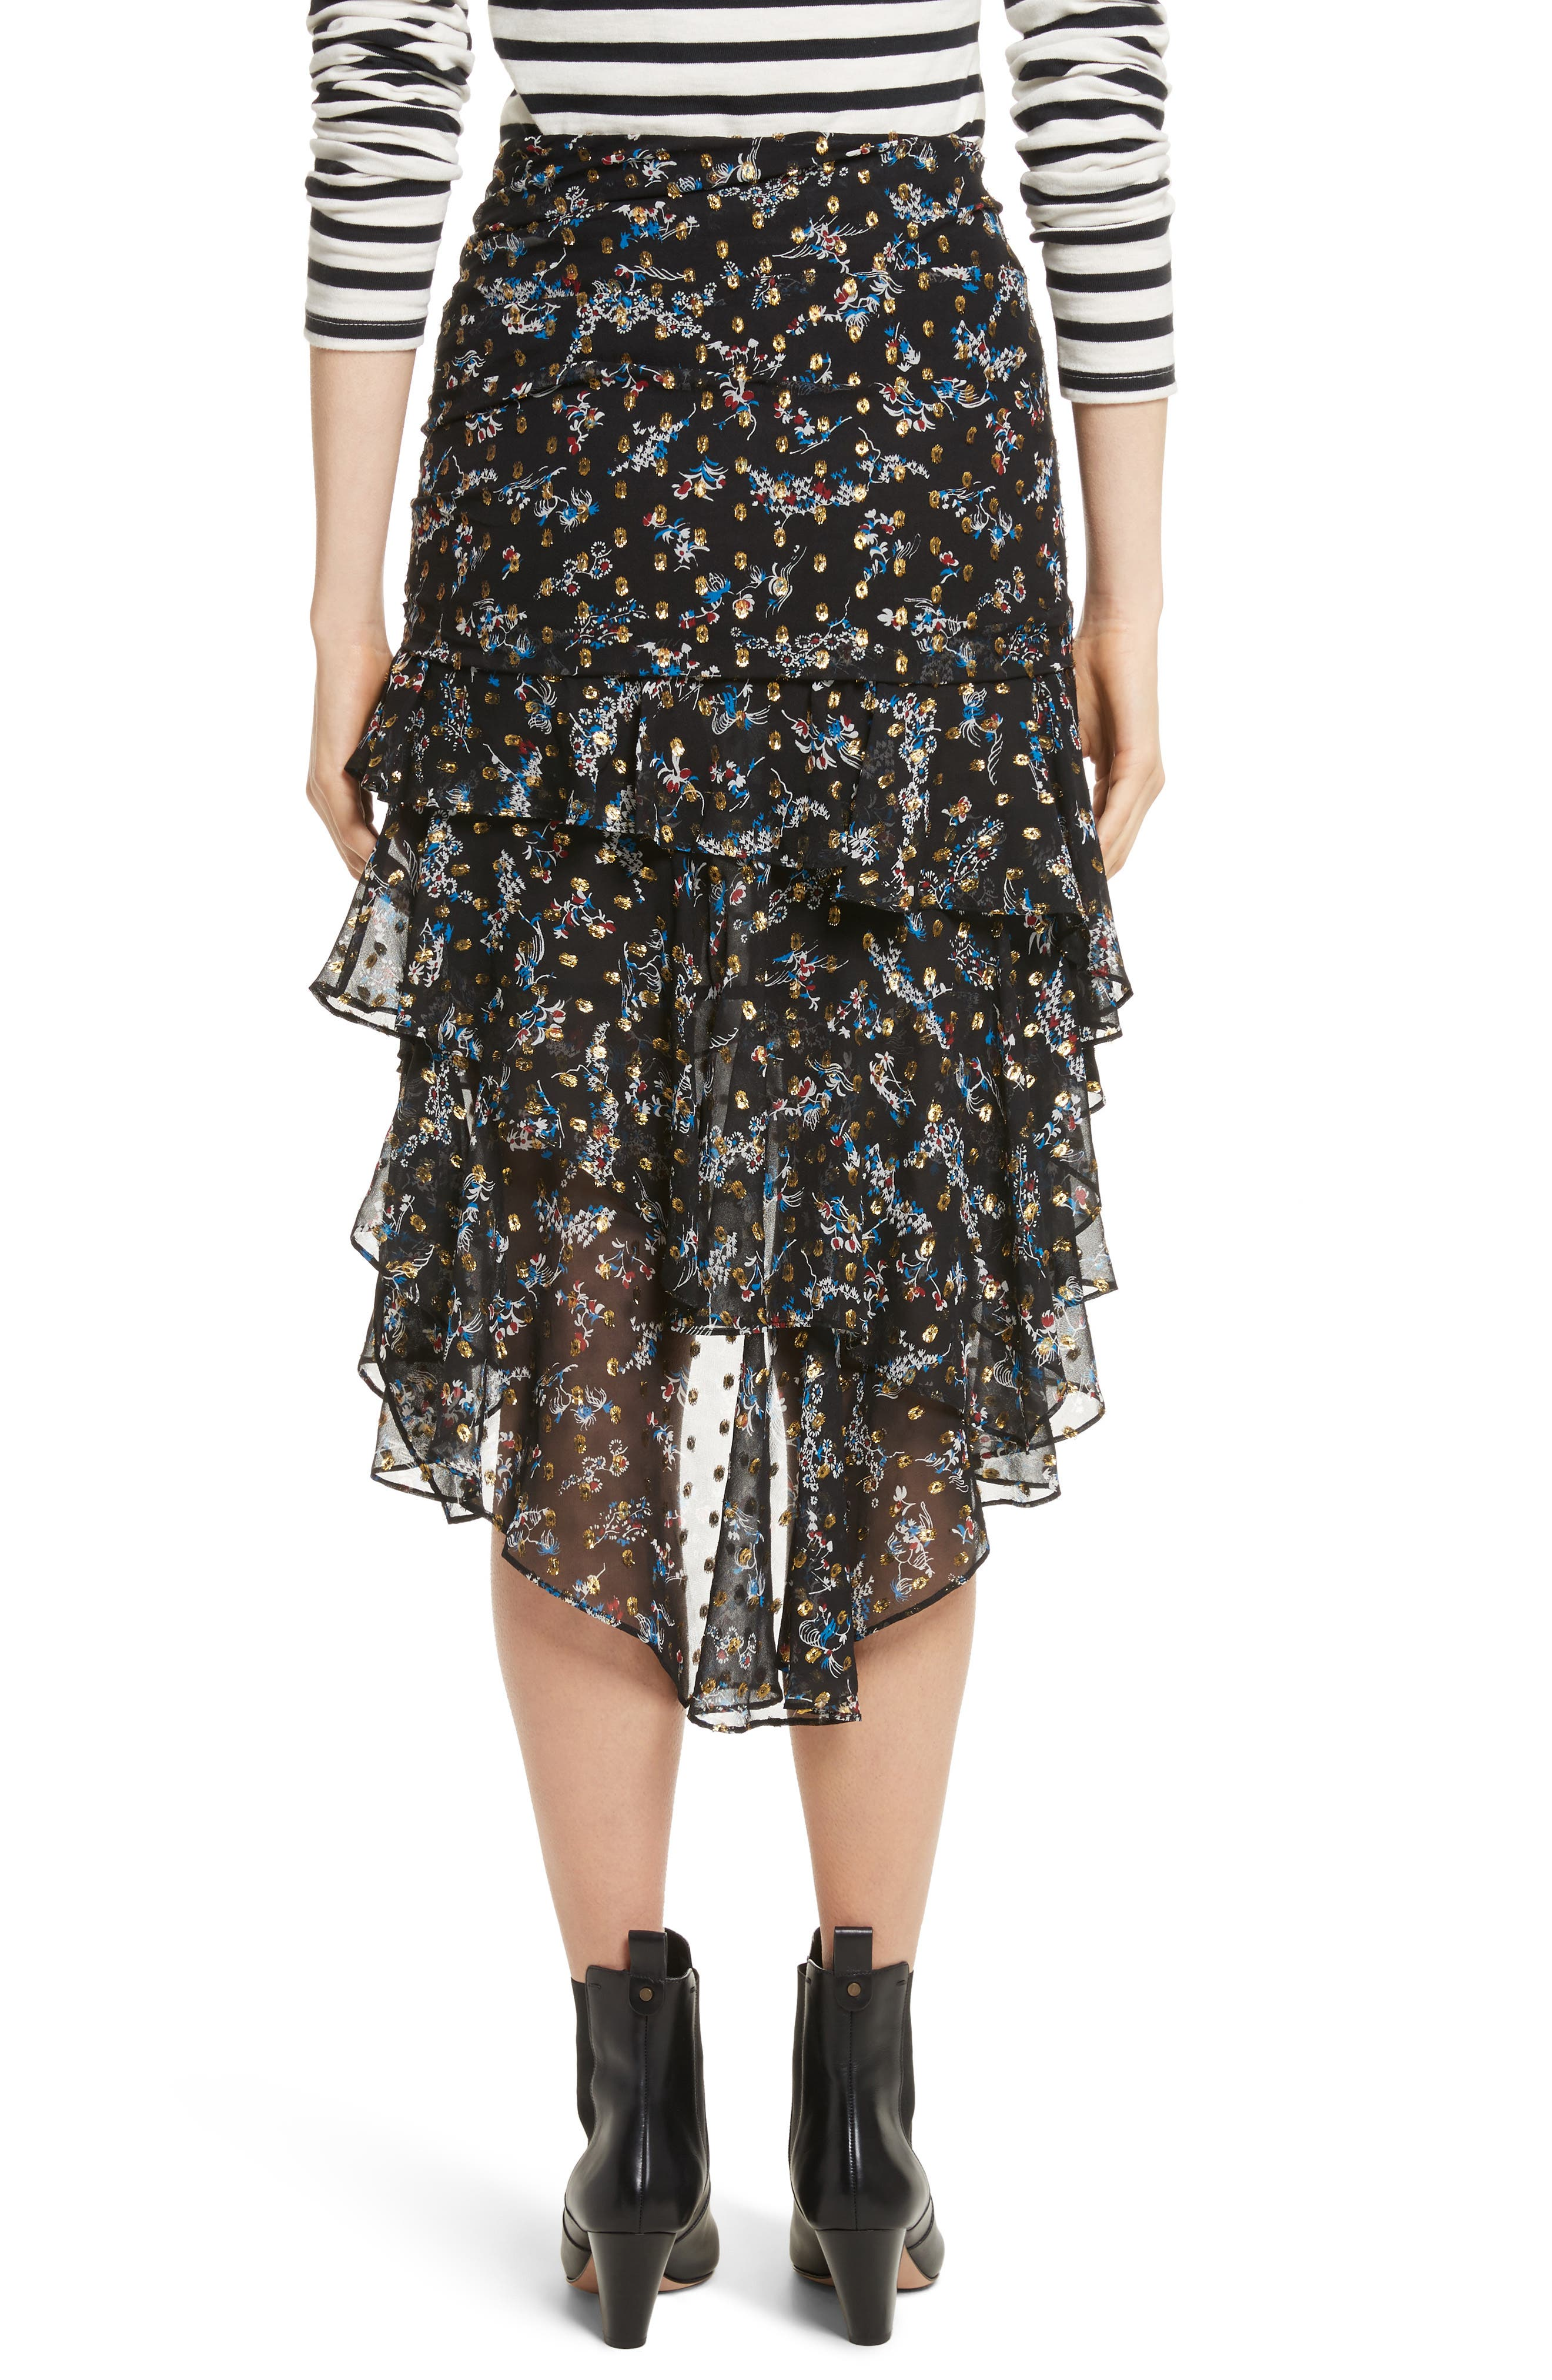 Cella Metallic Floral Print Midi Skirt,                             Alternate thumbnail 2, color,                             008